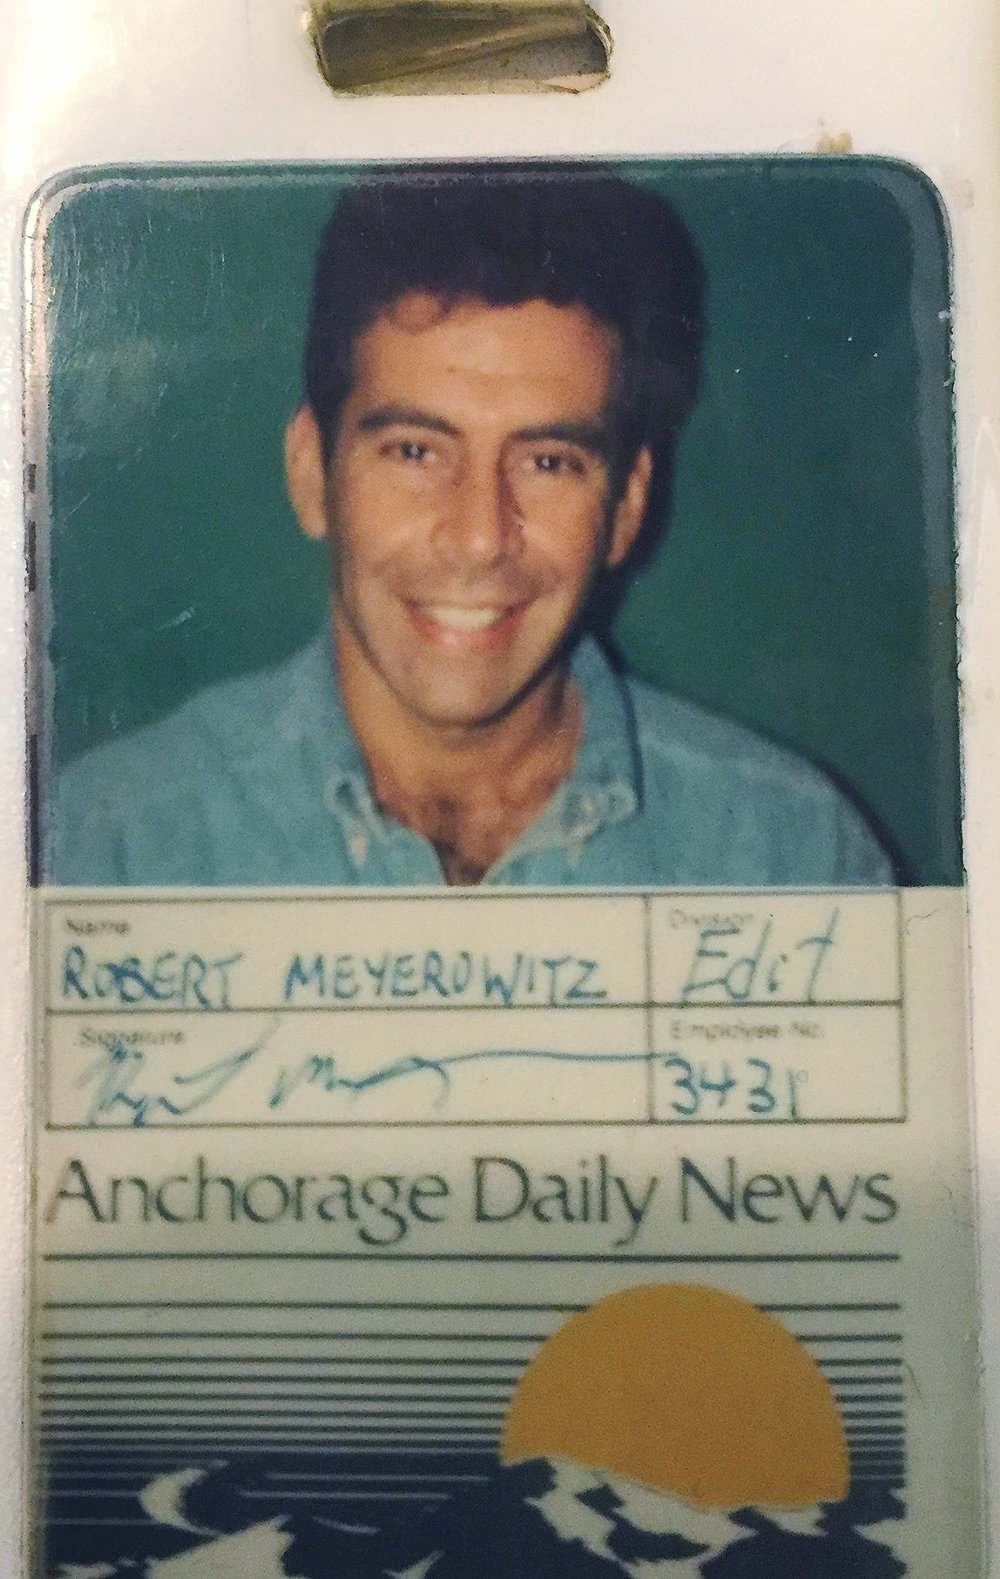 Robert Meyerowitz's Anchorage Daily News ID badge. / Courtesy of Robert